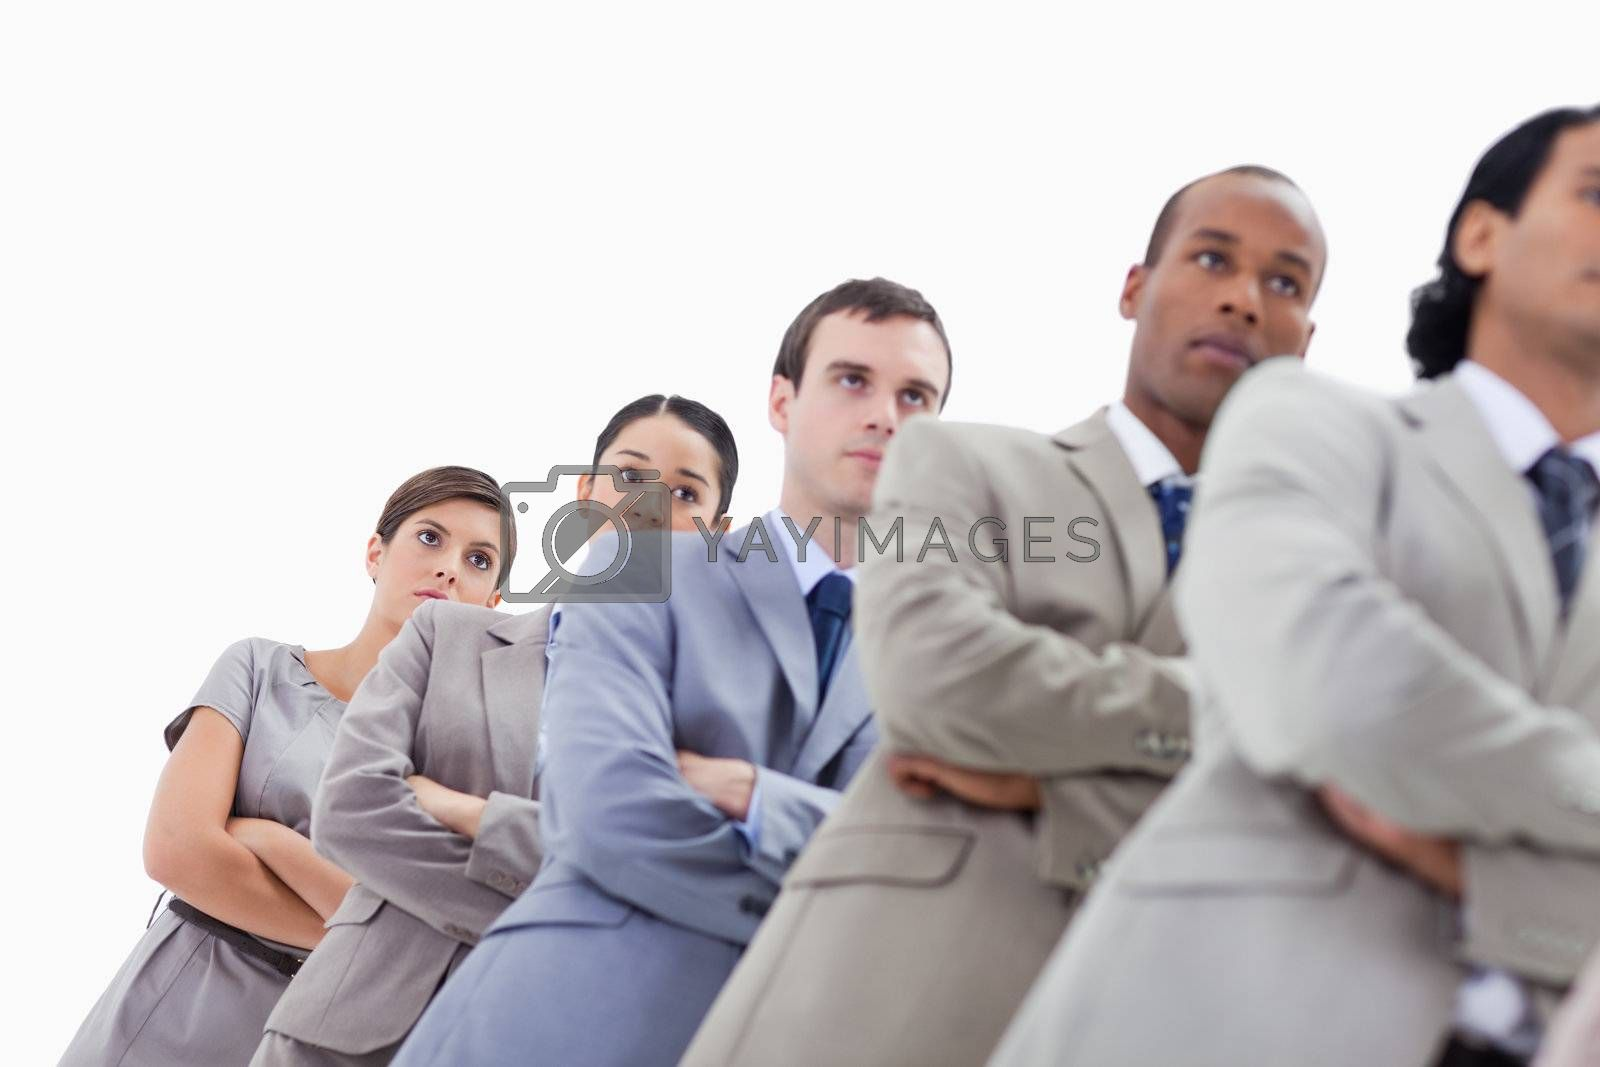 Low-angle shot of colleagues crossing their arms in a single line with focus on the last two women